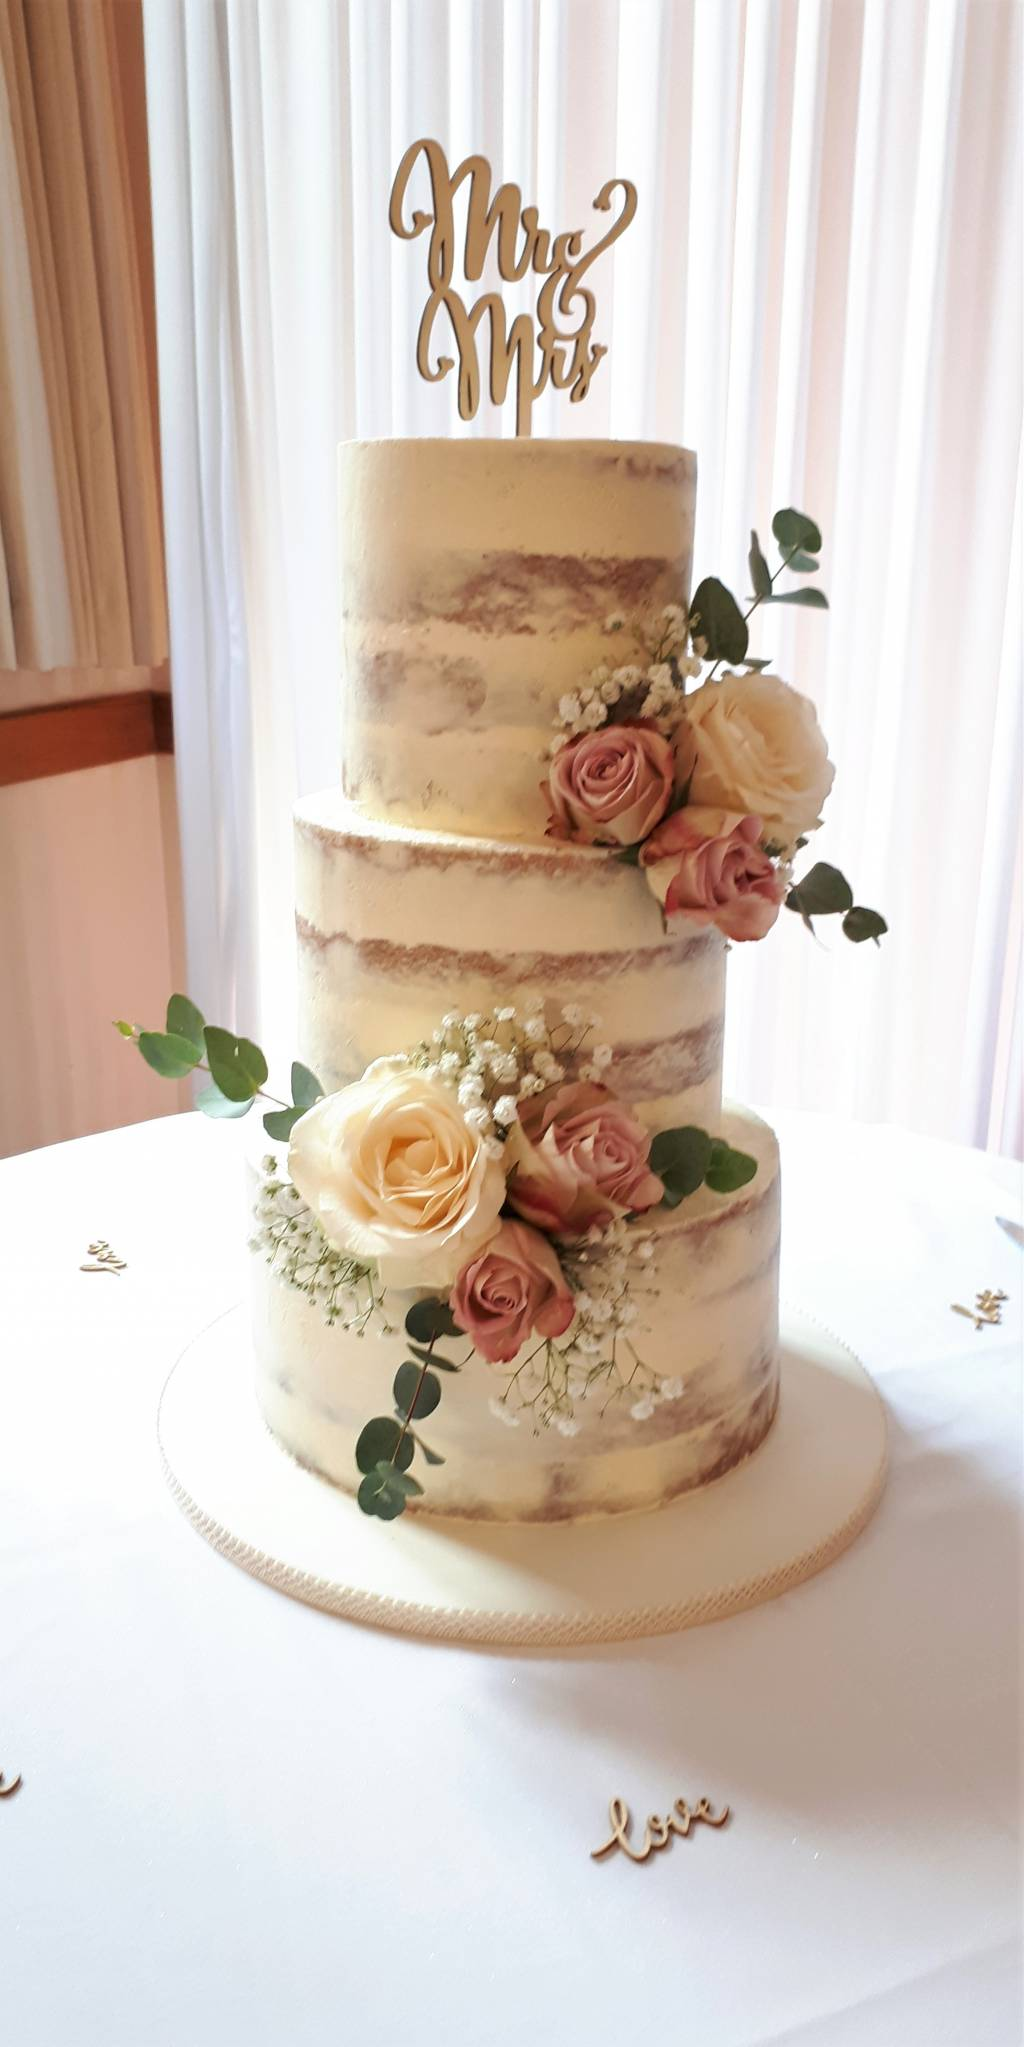 Image of a wedding cake